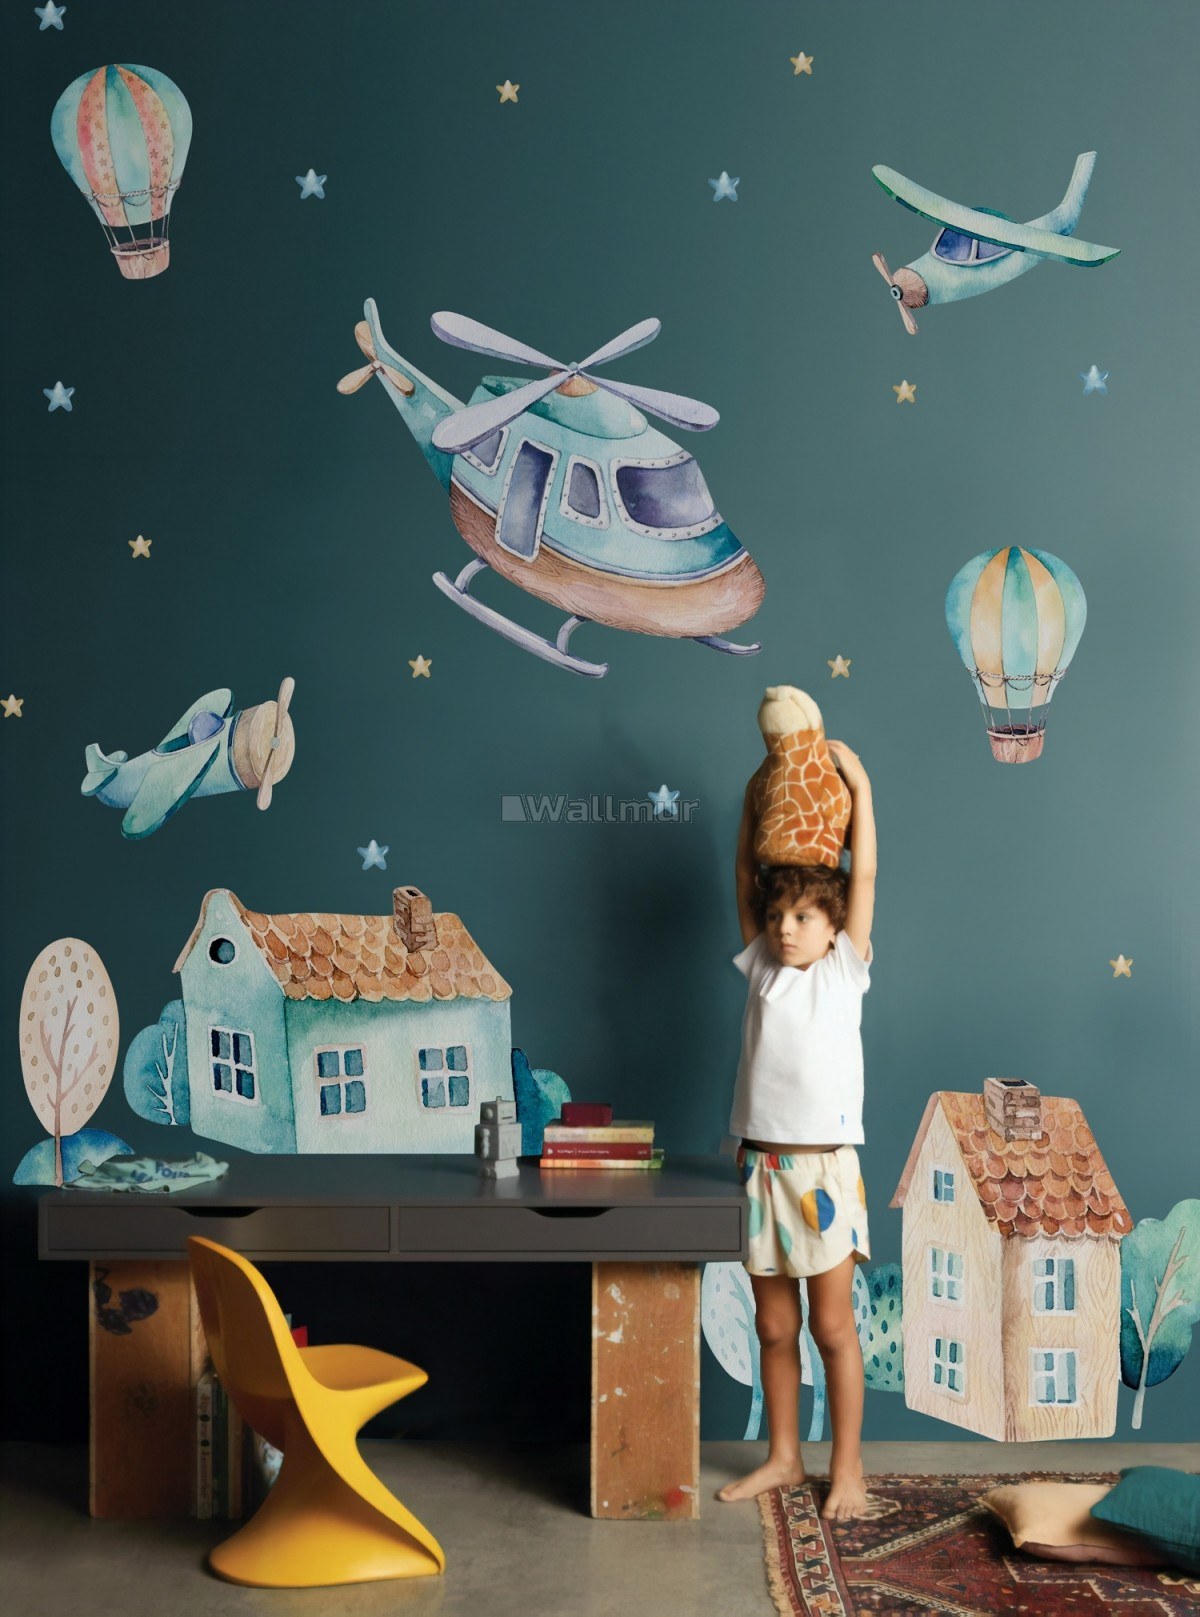 Kids Cartoon Village for Boys Watercolor Aircraft and Hot Air Balloon Wall Decal Sticker